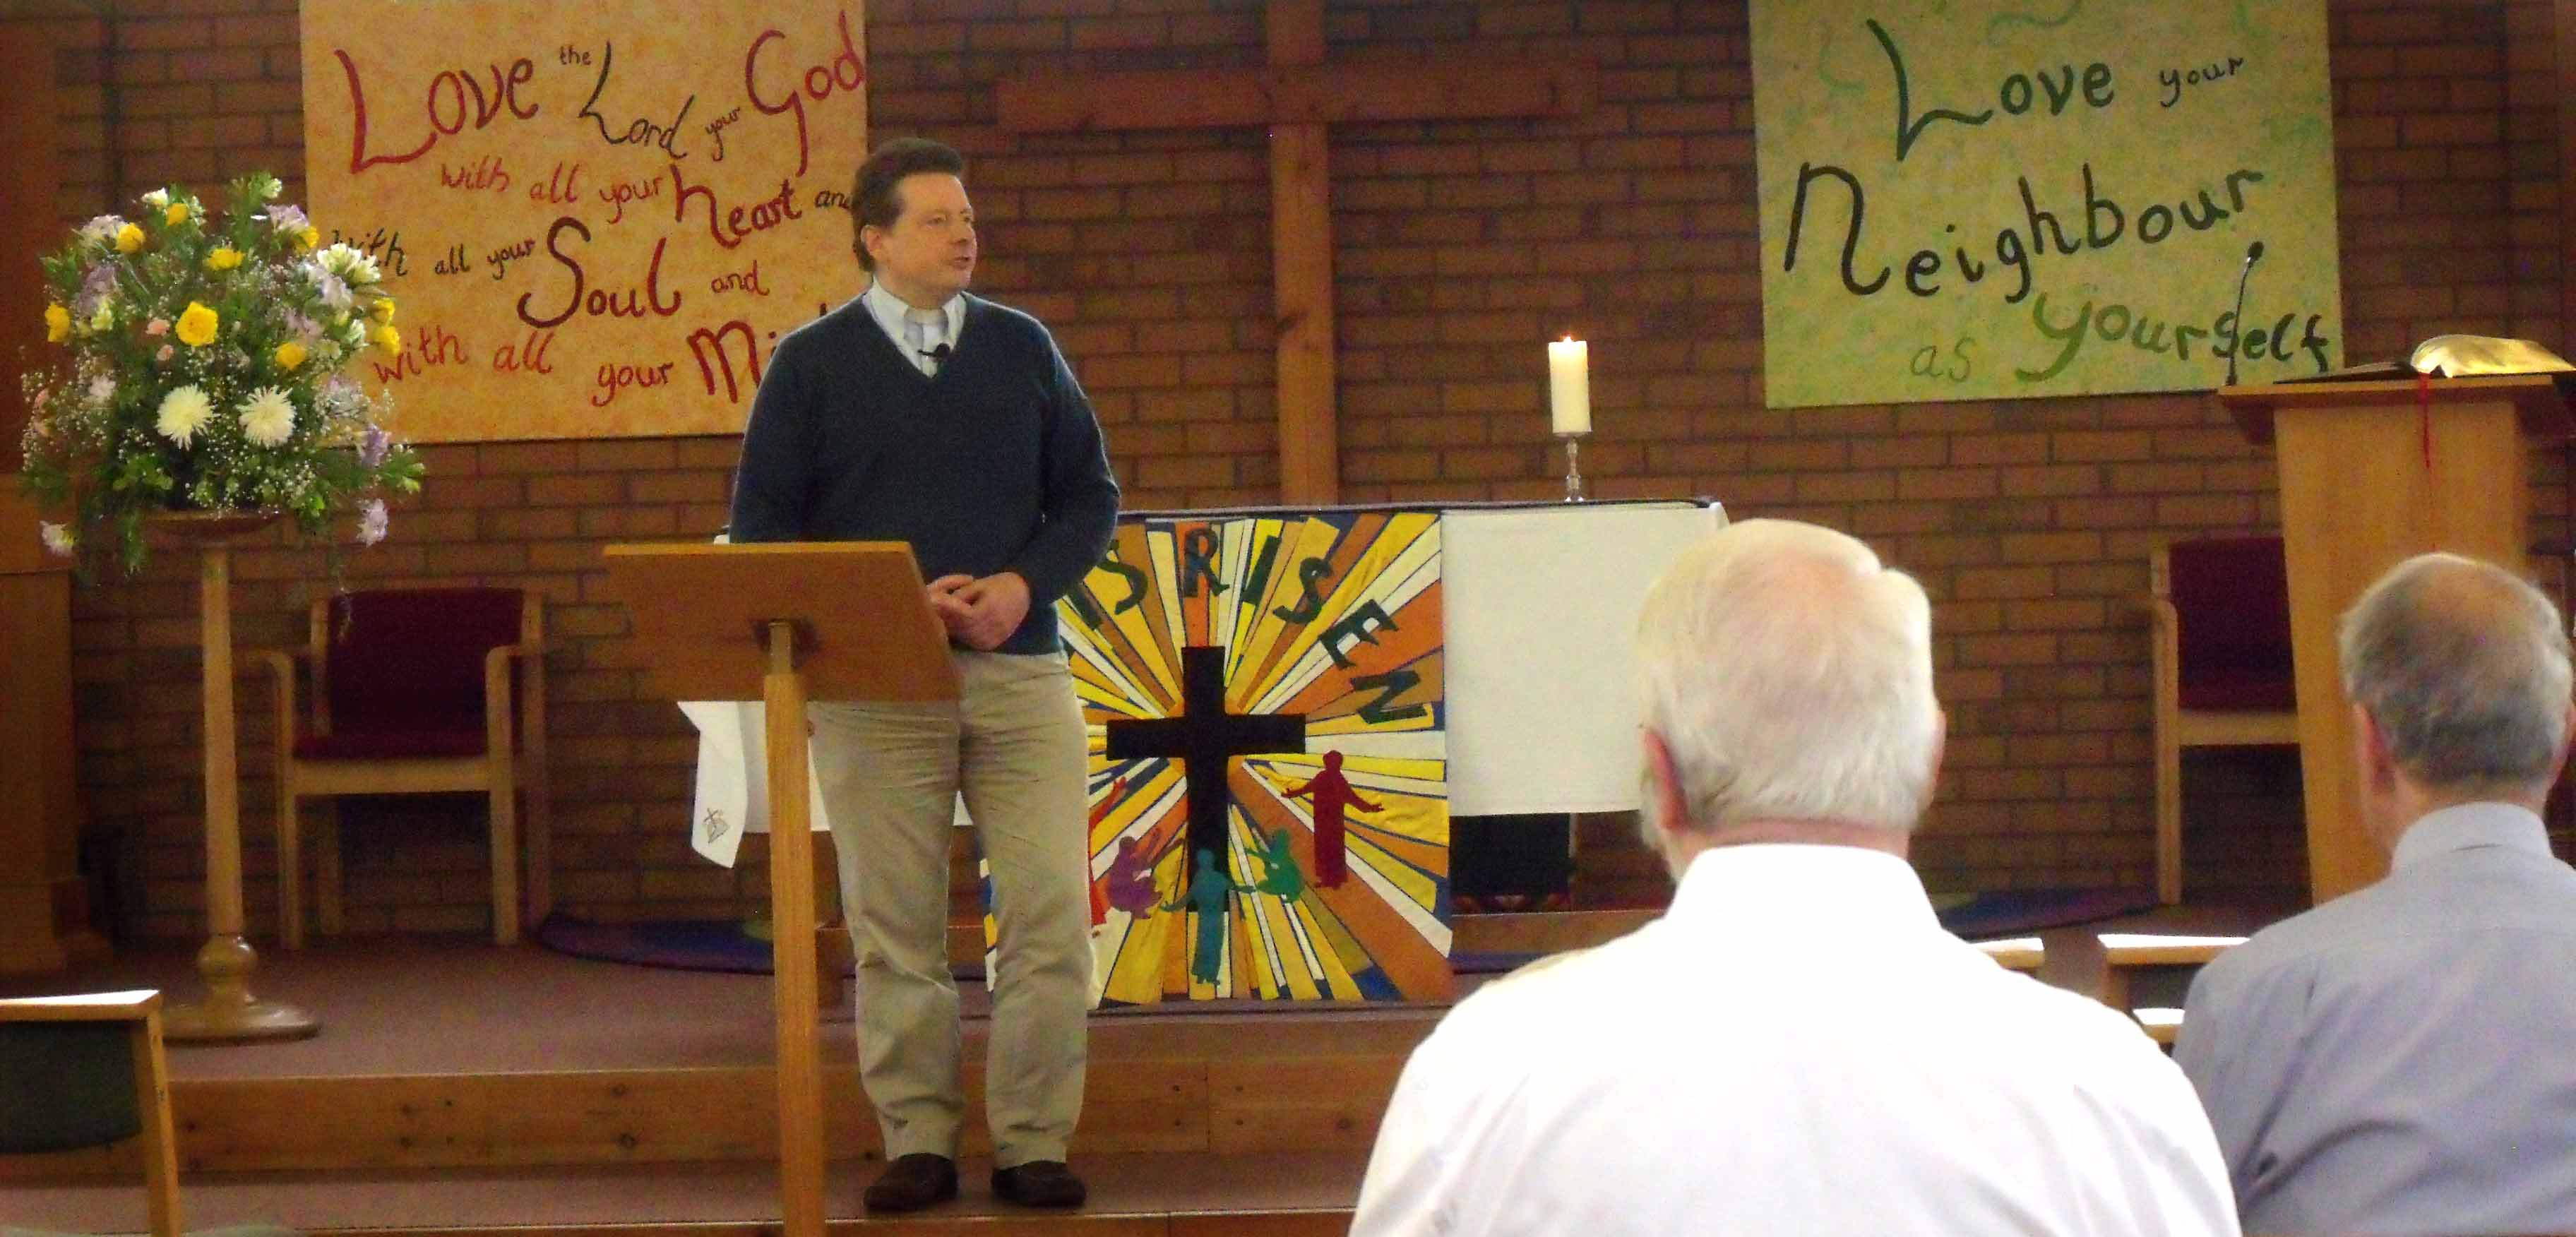 Revd Paul Hinckley during his sermon at Sunday Service